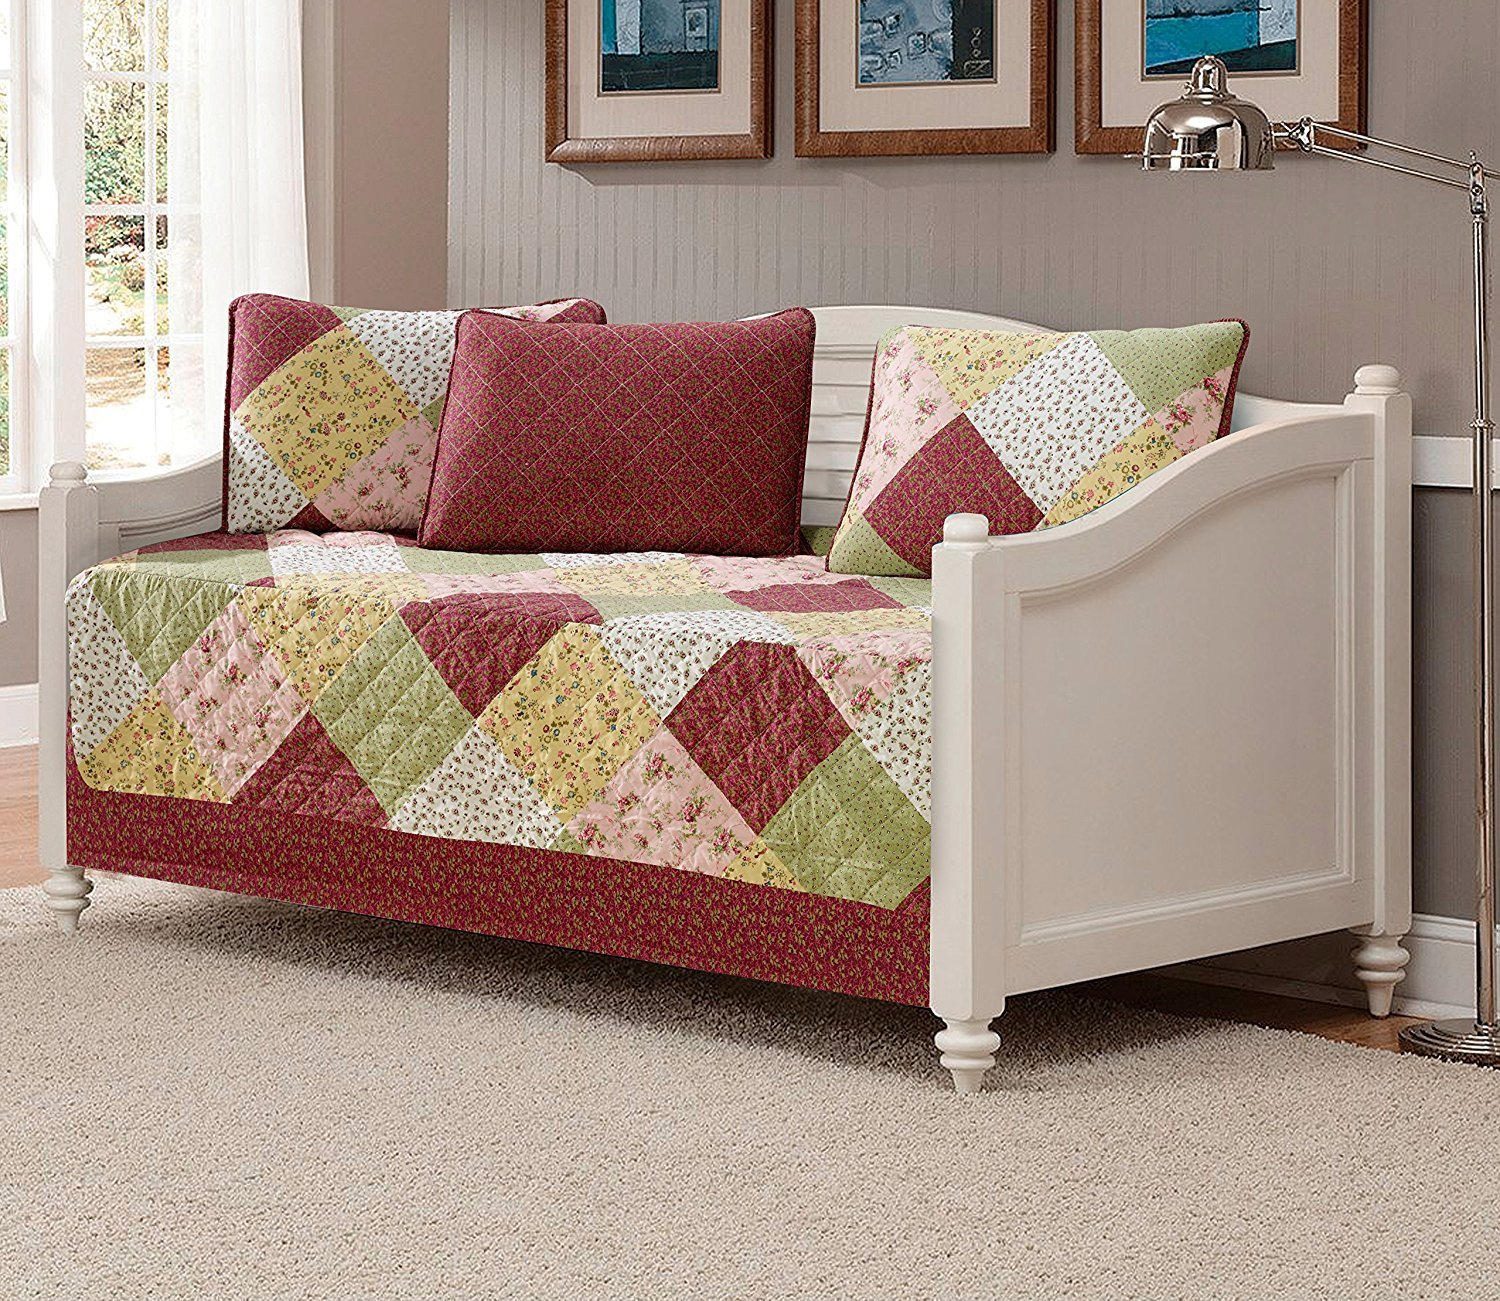 Fancy Collection 5pc DayBed Quilted Bedspread Coverlet Set Patchwork Floral Burgundy Off White Pink Beige New